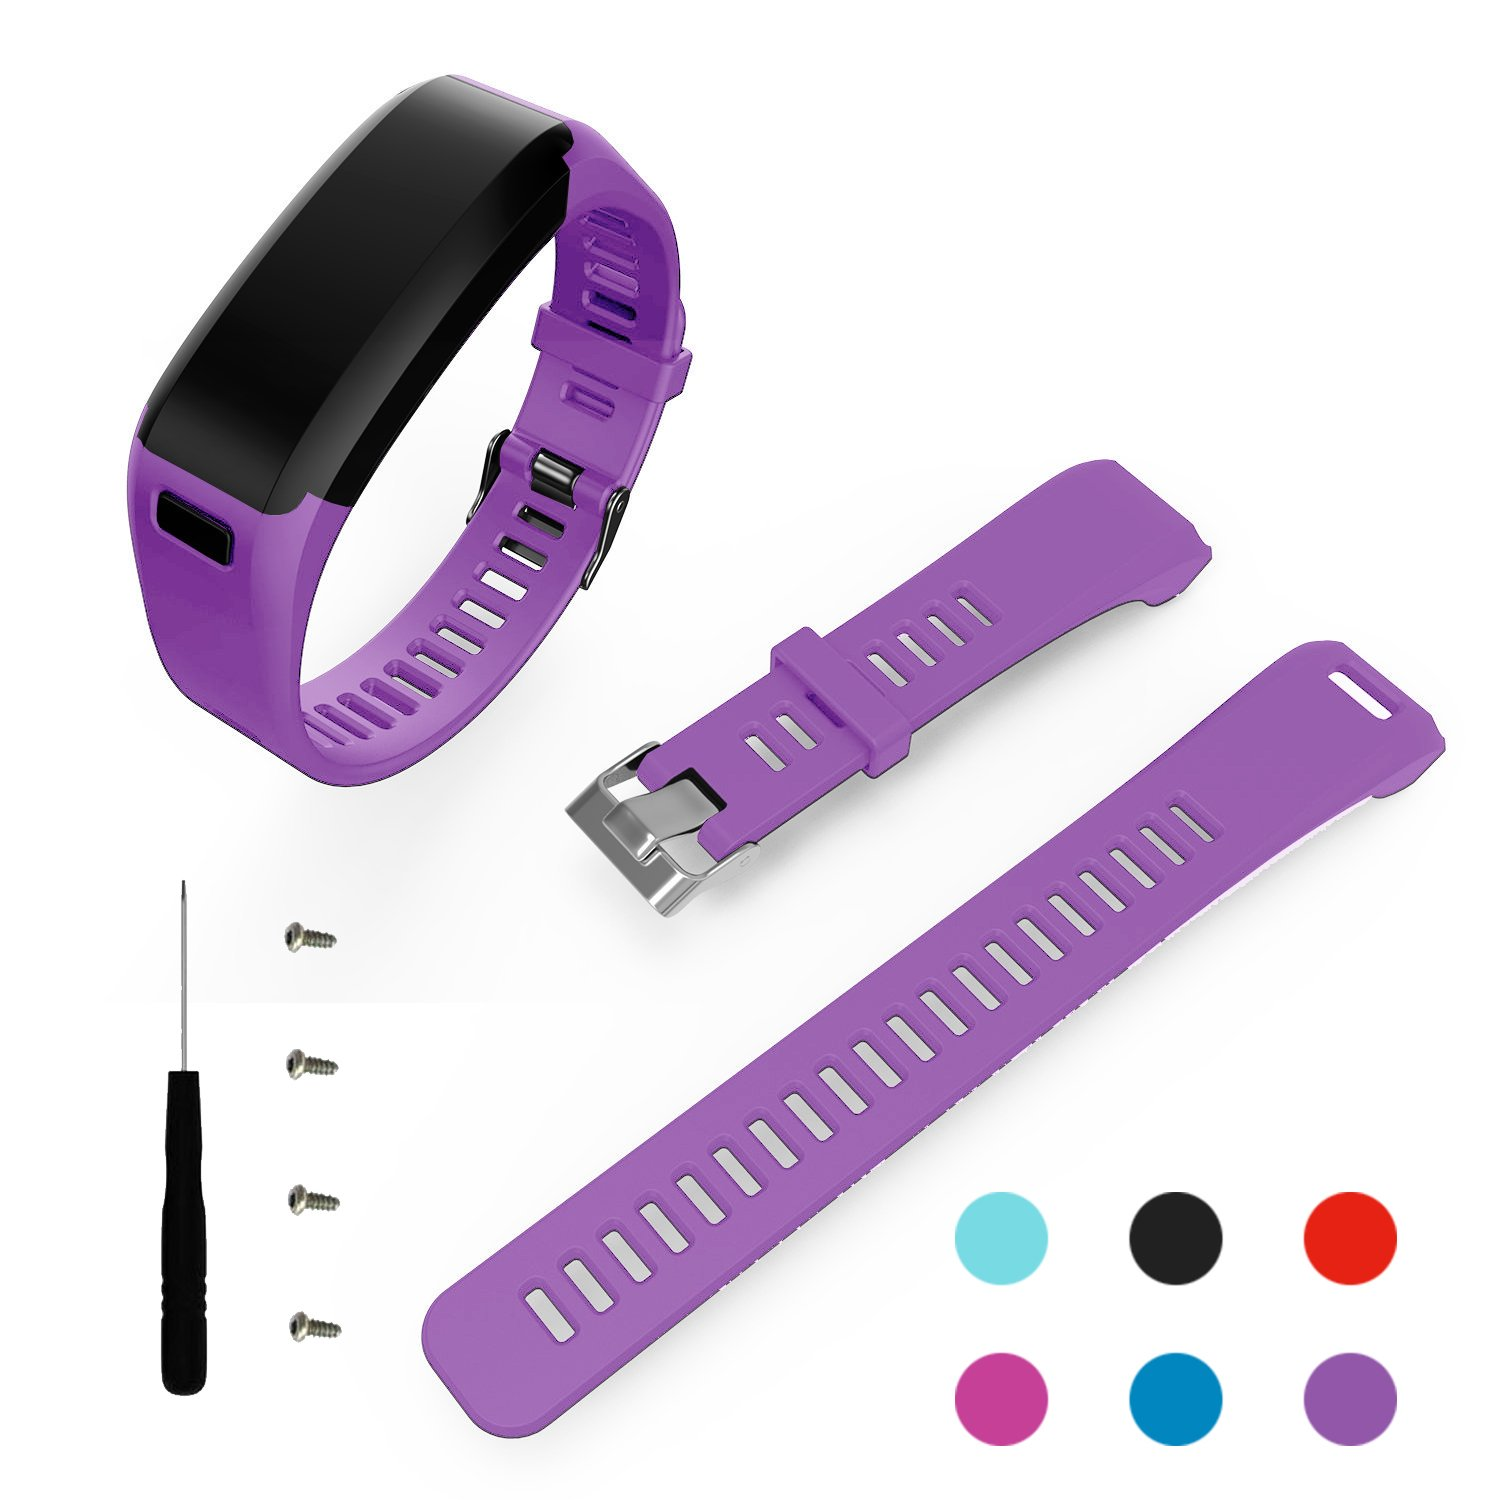 Replacement Soft Silicone Bracelet Sport Strap Wristband Accessory with Screwdriver for Garmin Vivosmart HR No Tracker, Replacement Bands Only BeneStellar for Garmin Vivosmart HR Band